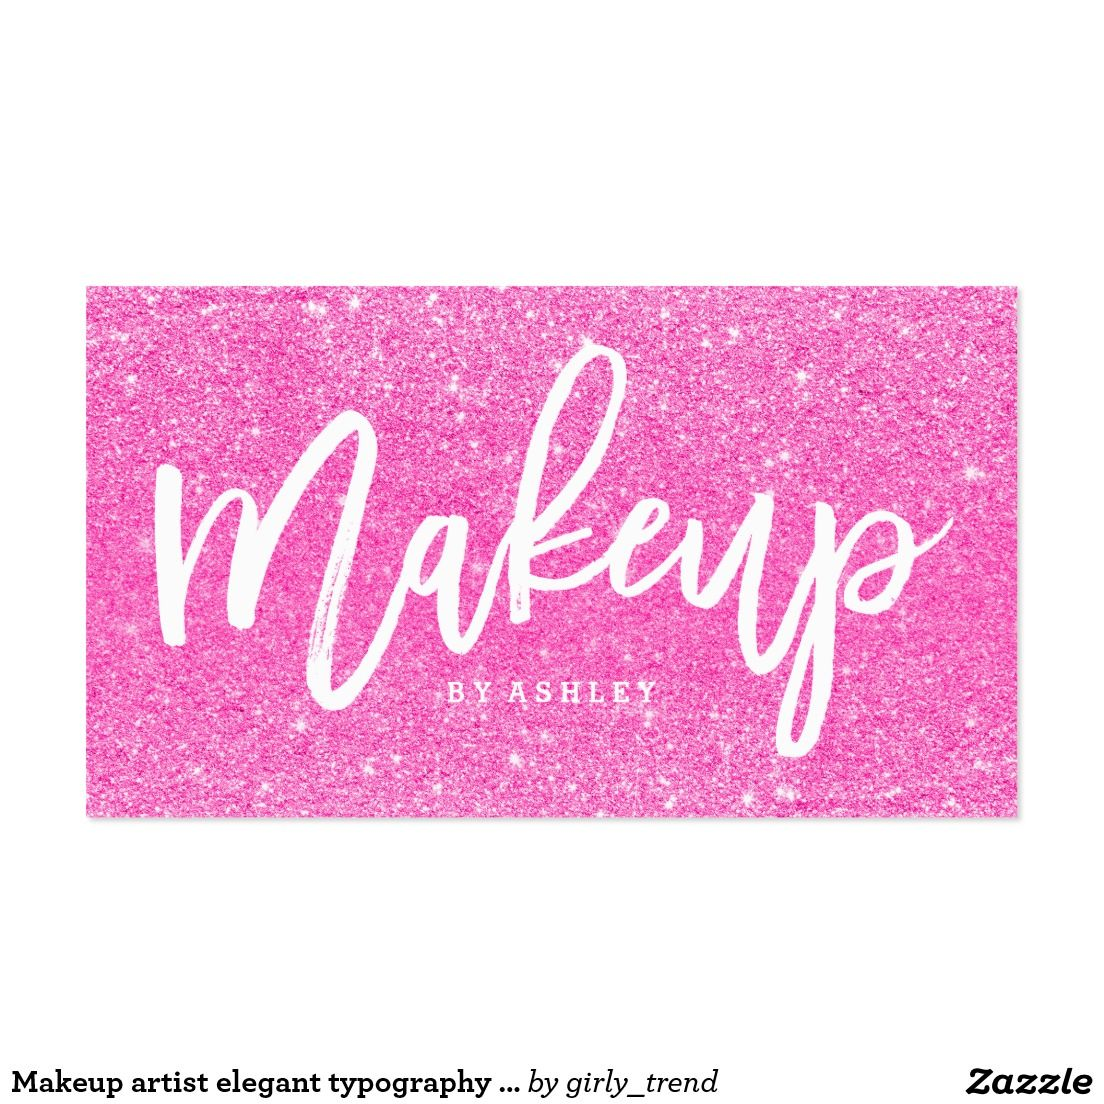 Makeup artist elegant typography faux pink glitter business card ...